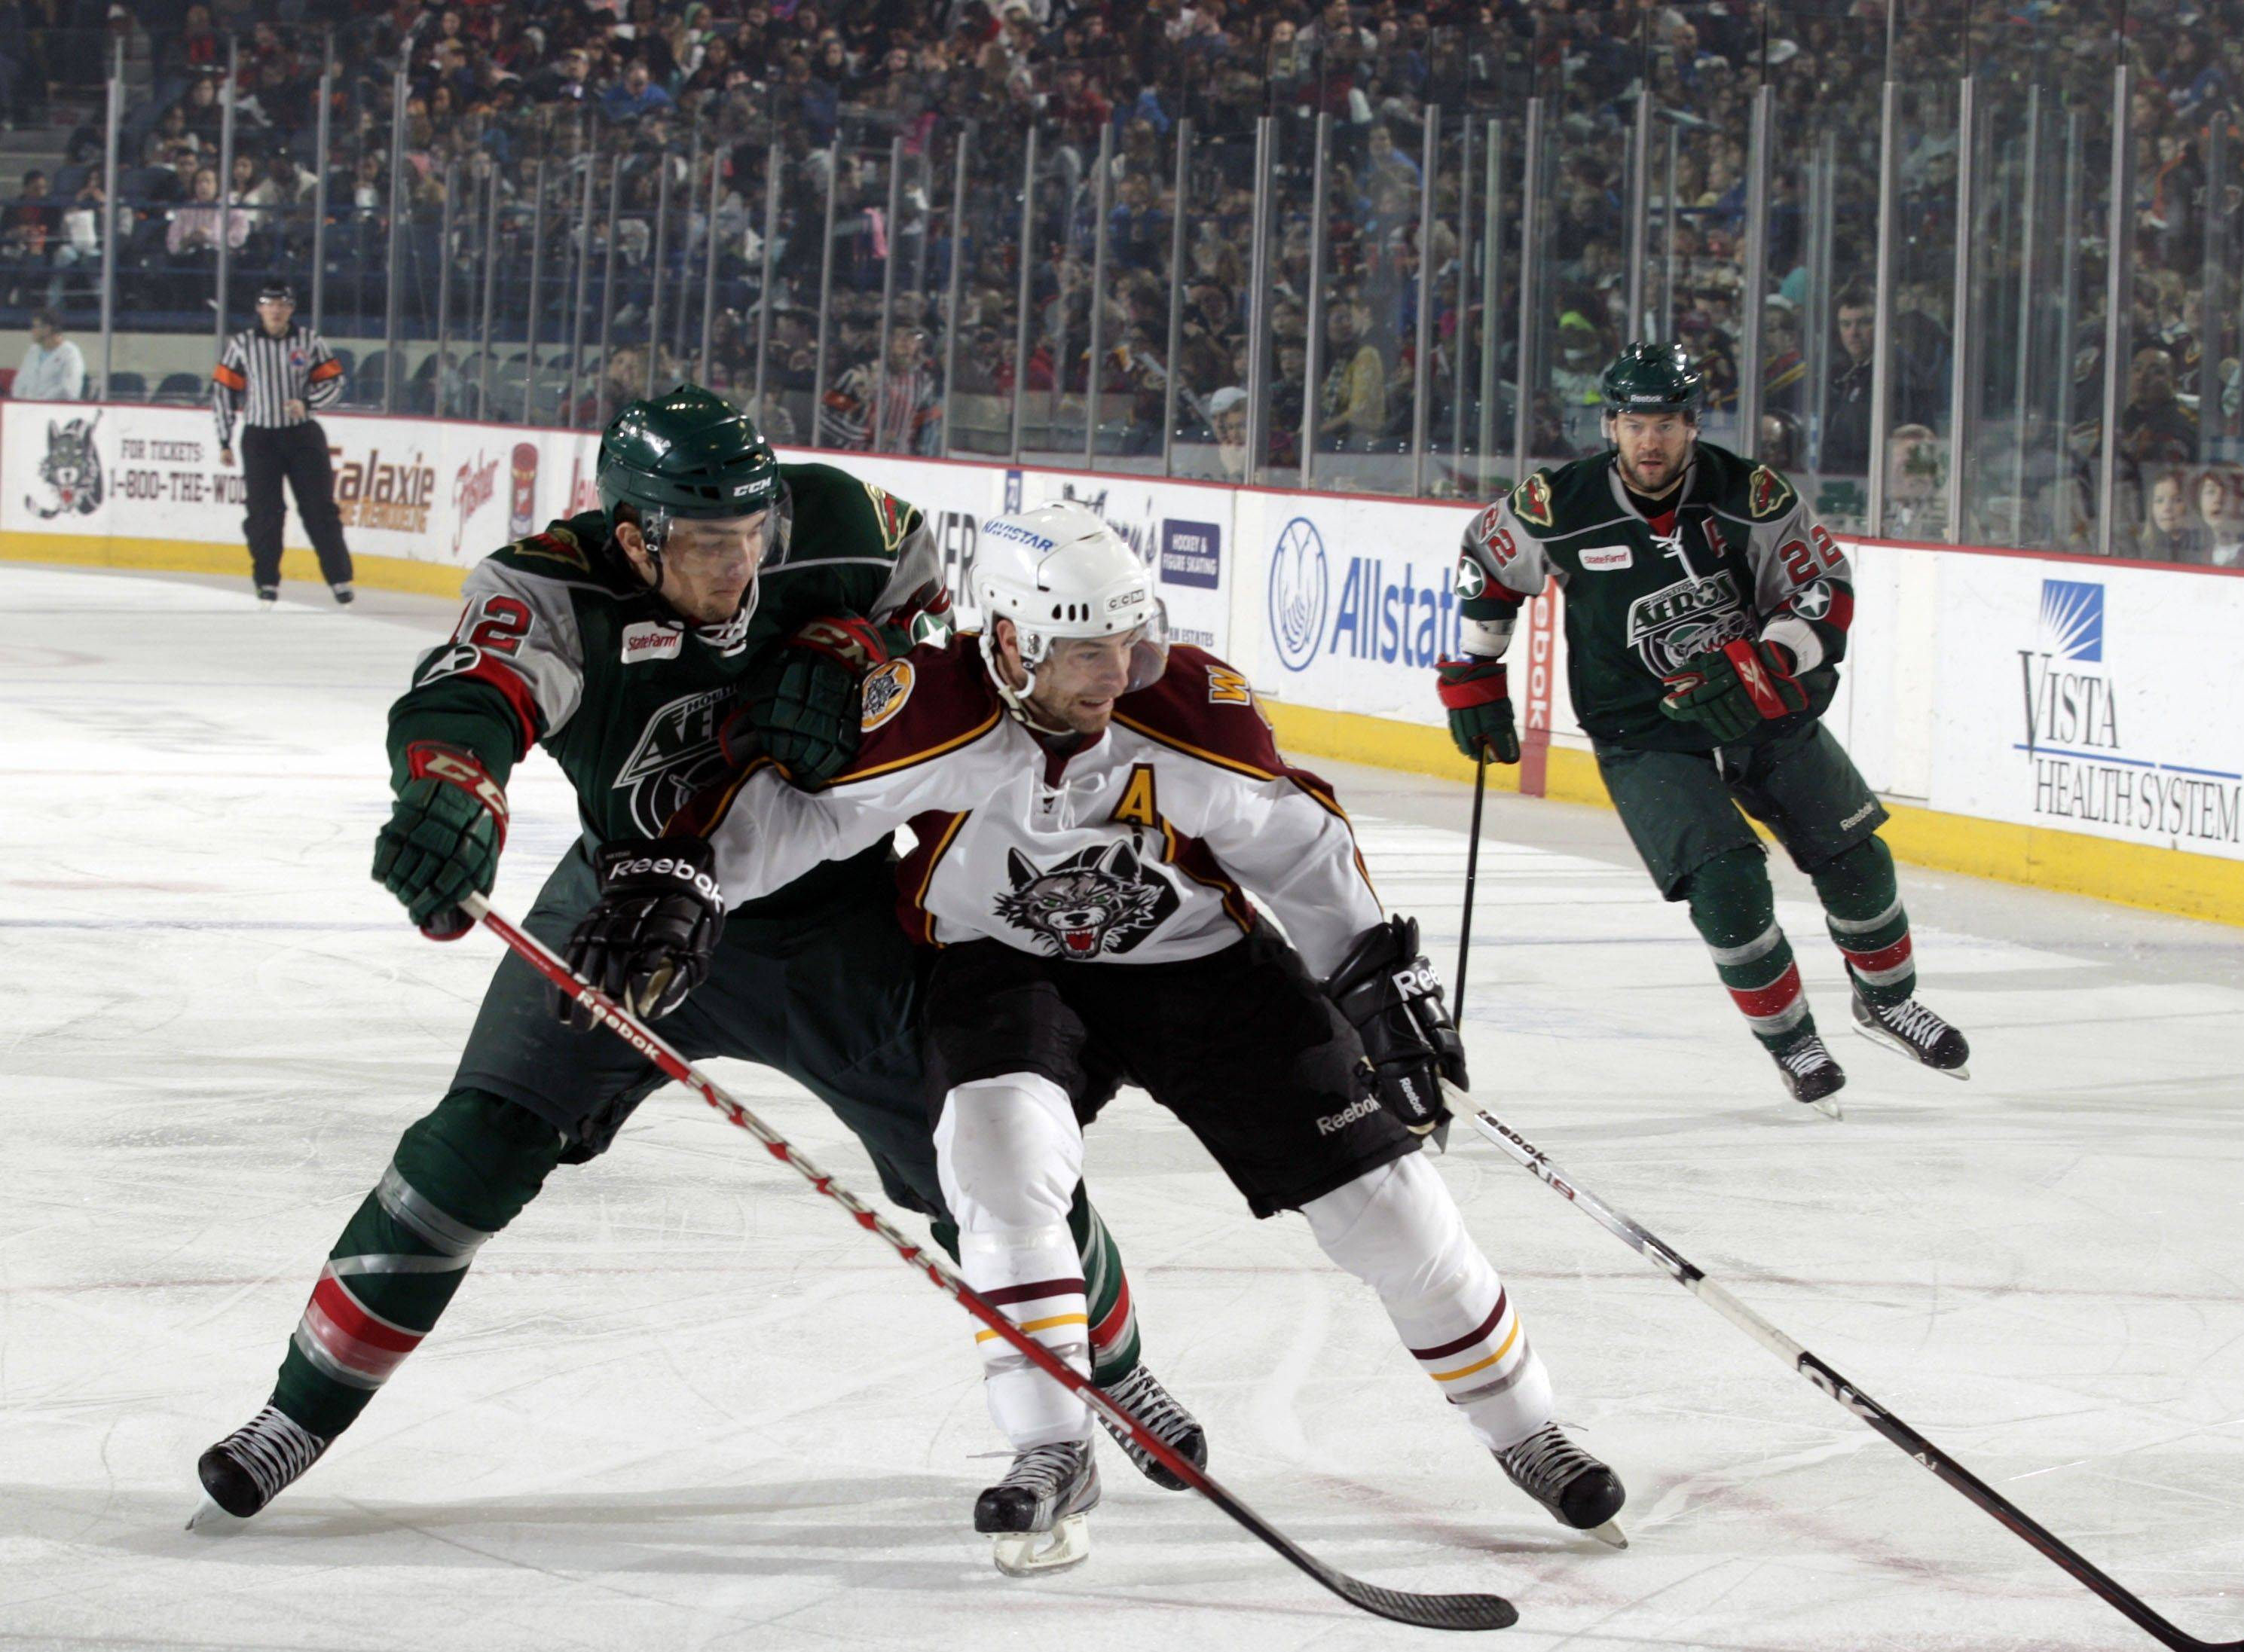 Chicago Wolves winger Darren Haydar battles to maintain control of the puck against Cody Almond of the Houston Aeros at Allstate Arena.